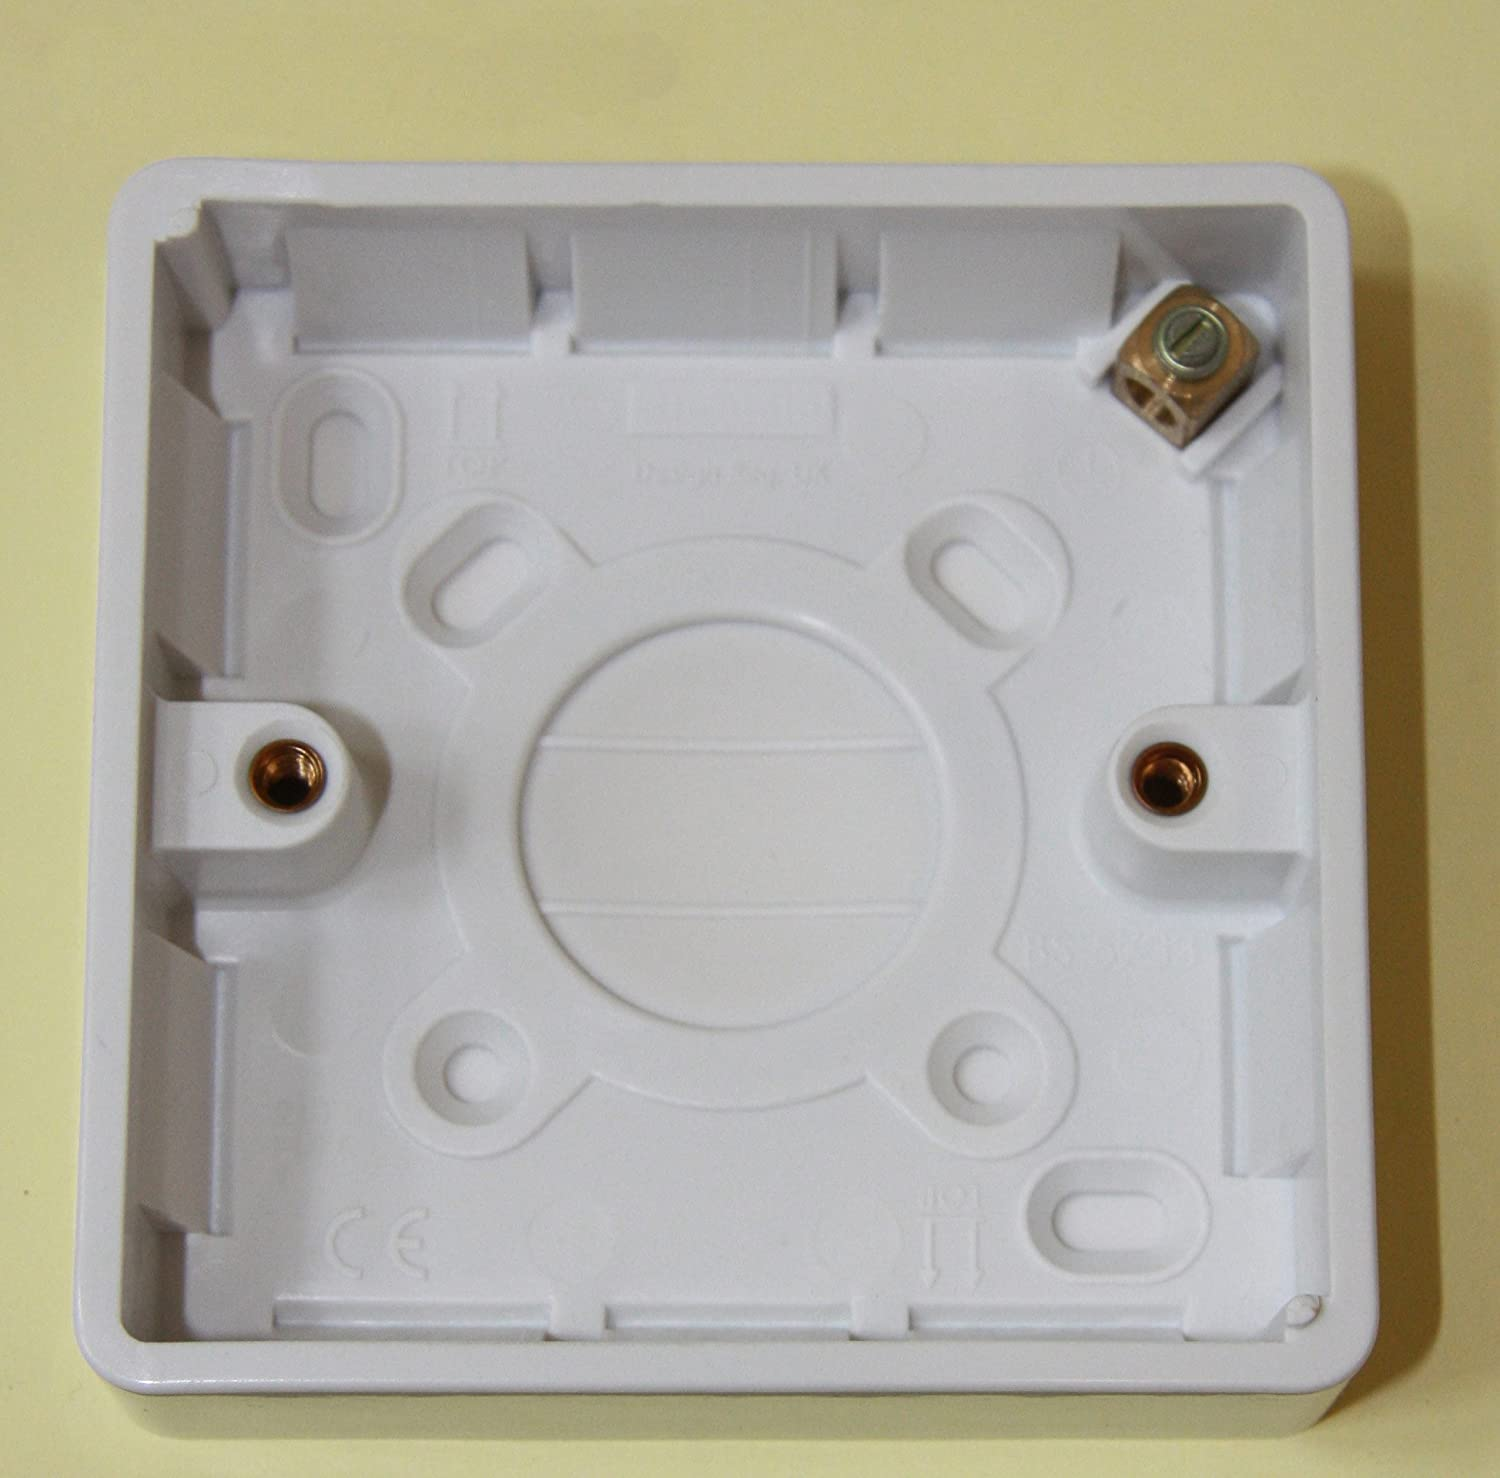 Legrand Synergy - 7364 03 - Moulded Surface Mounted 1 Gang 16mm Deep Box